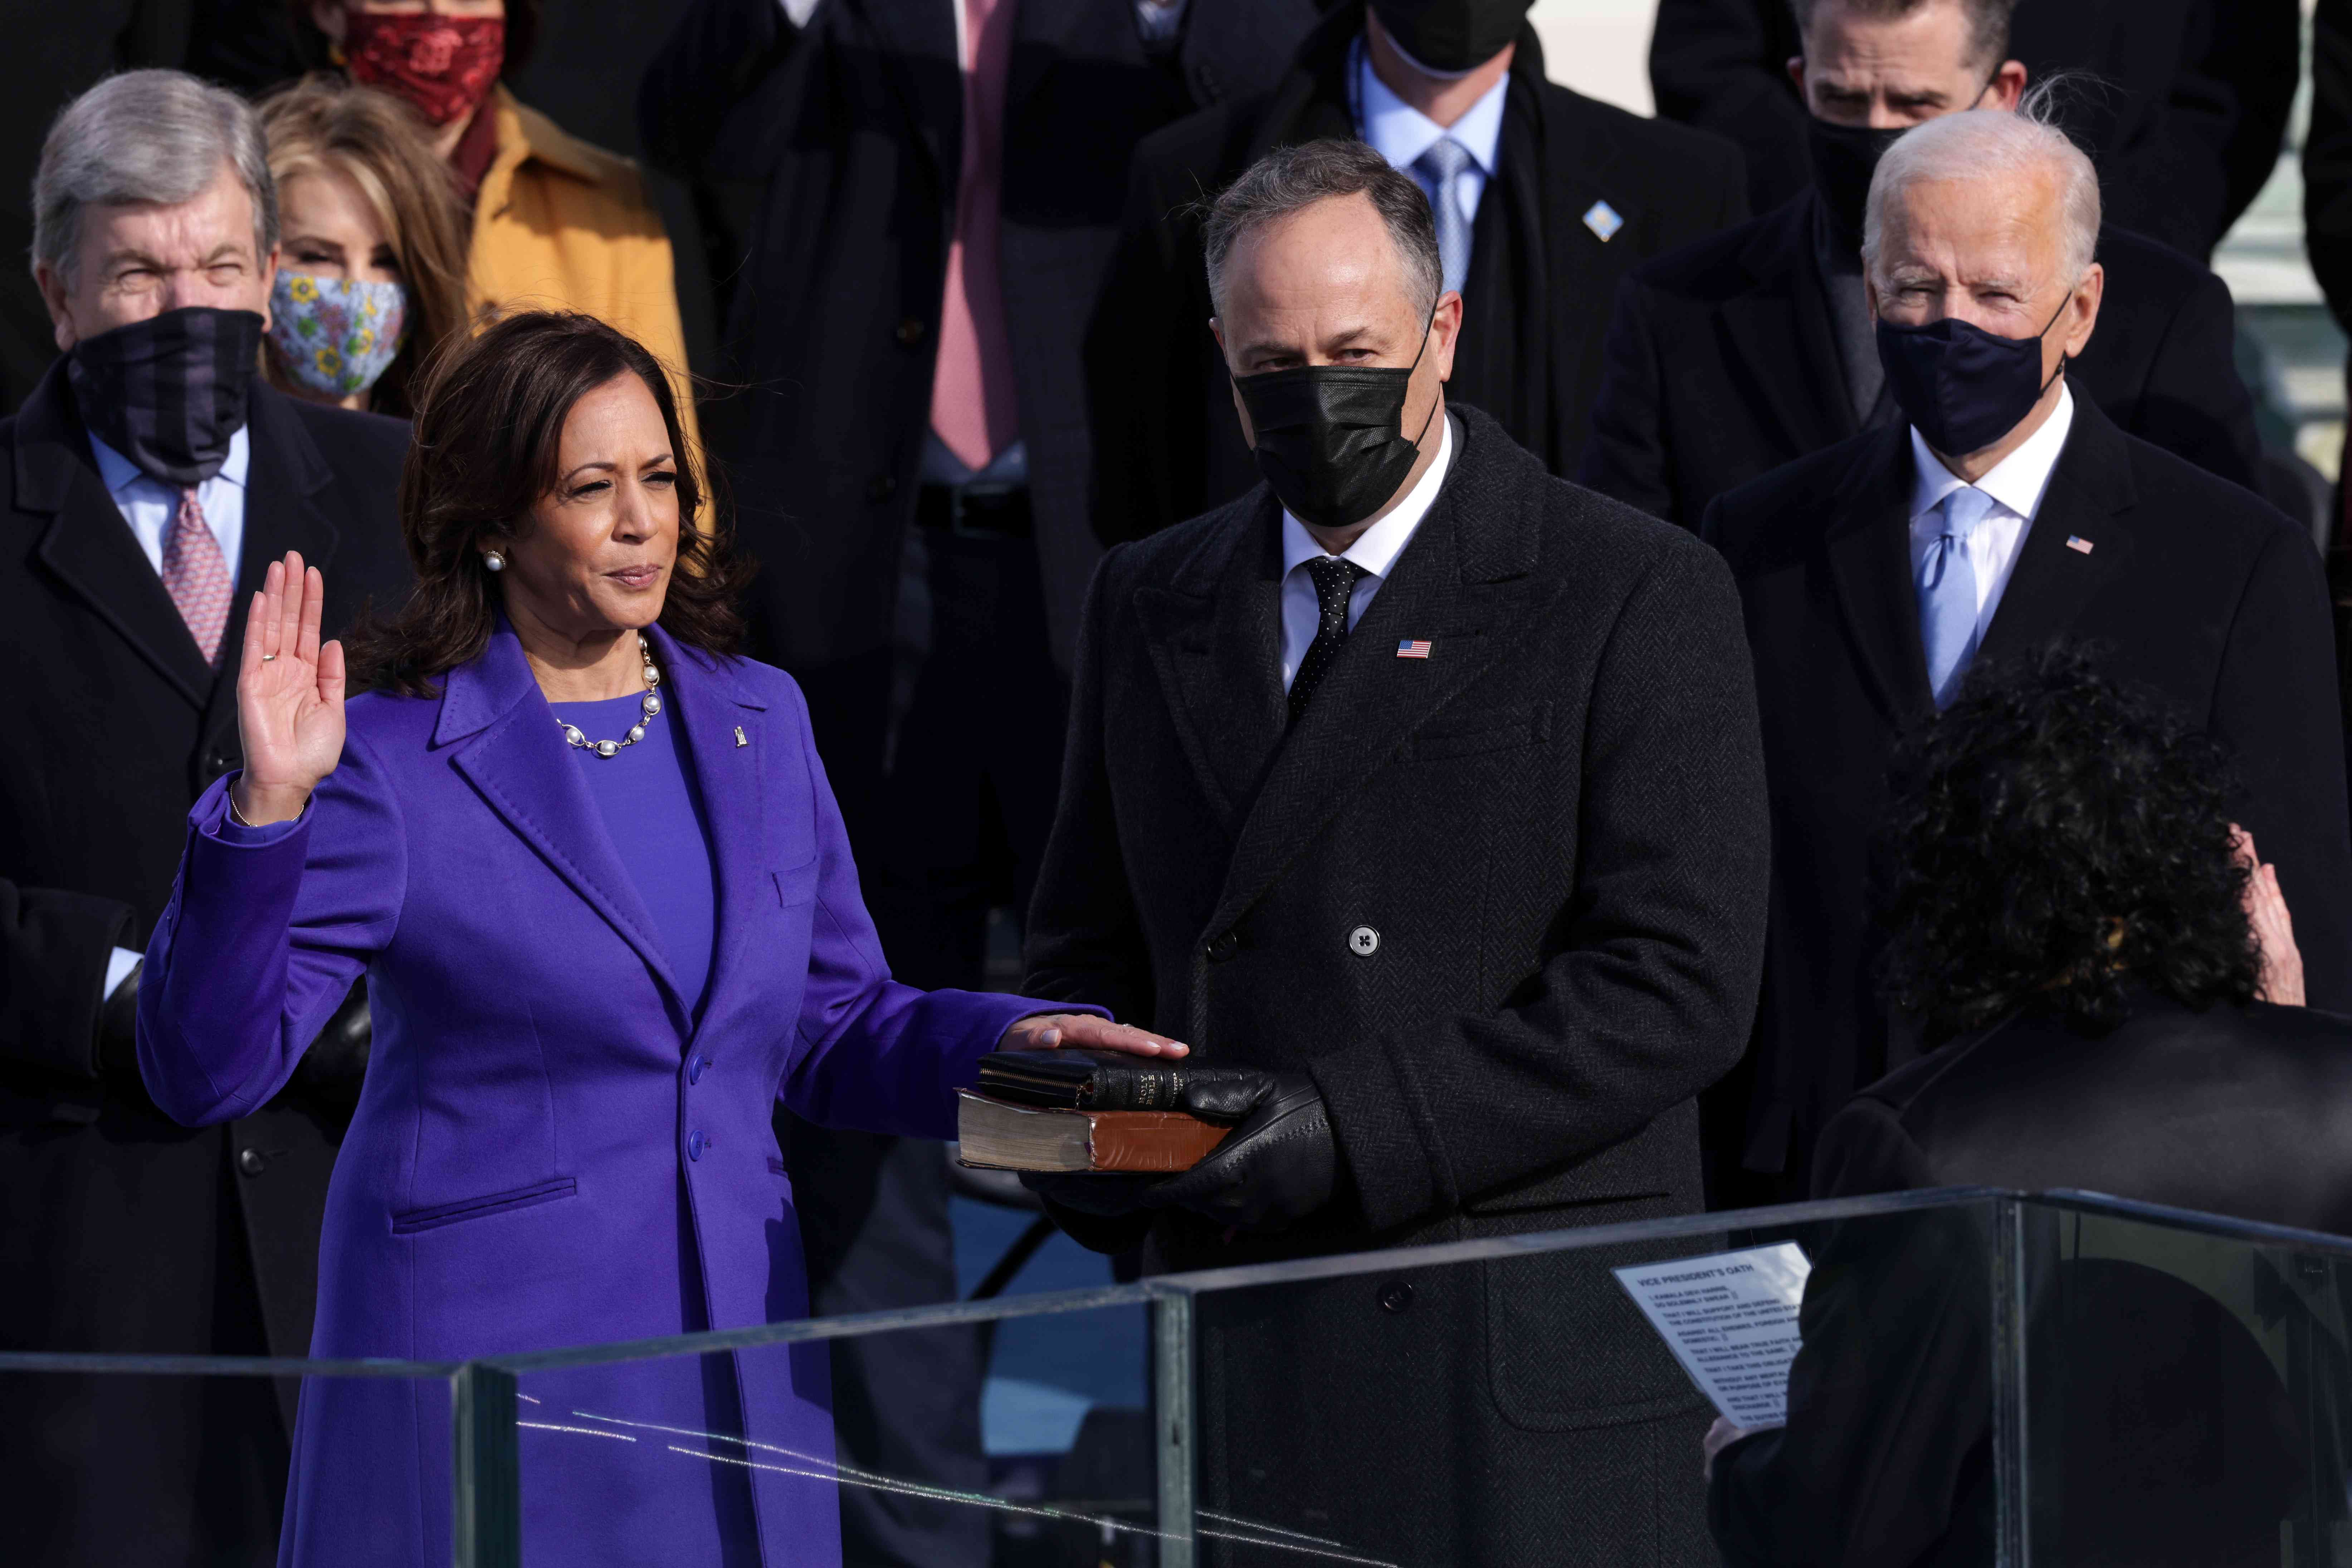 Kamala Harris takes the oath of office as Doug Emhoff holds her Bibles